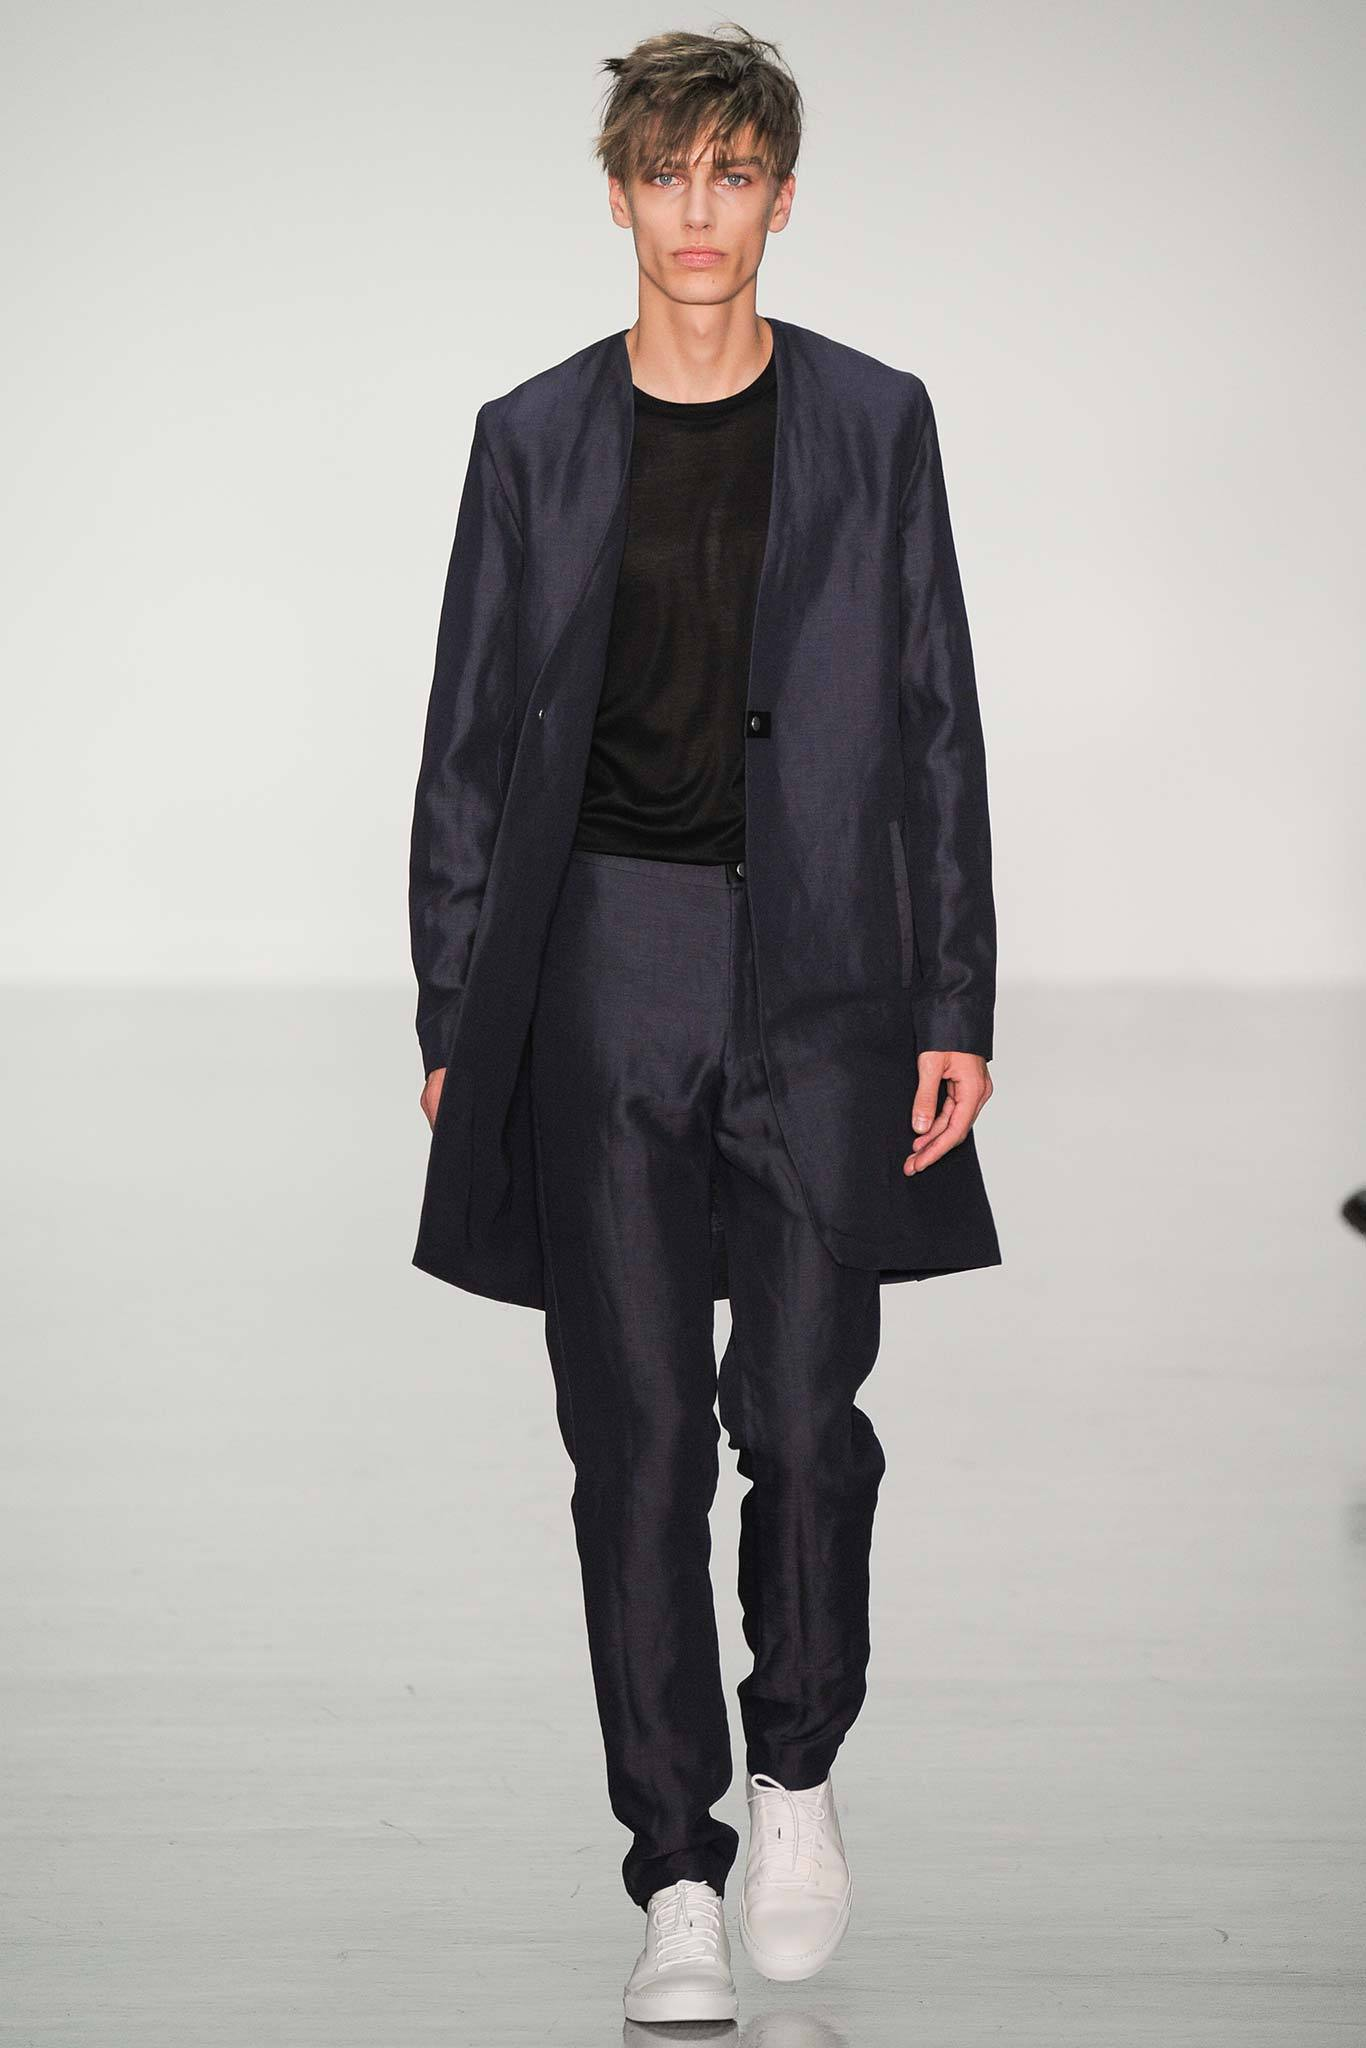 Lee Roach 2015 Spring Summer London Collections